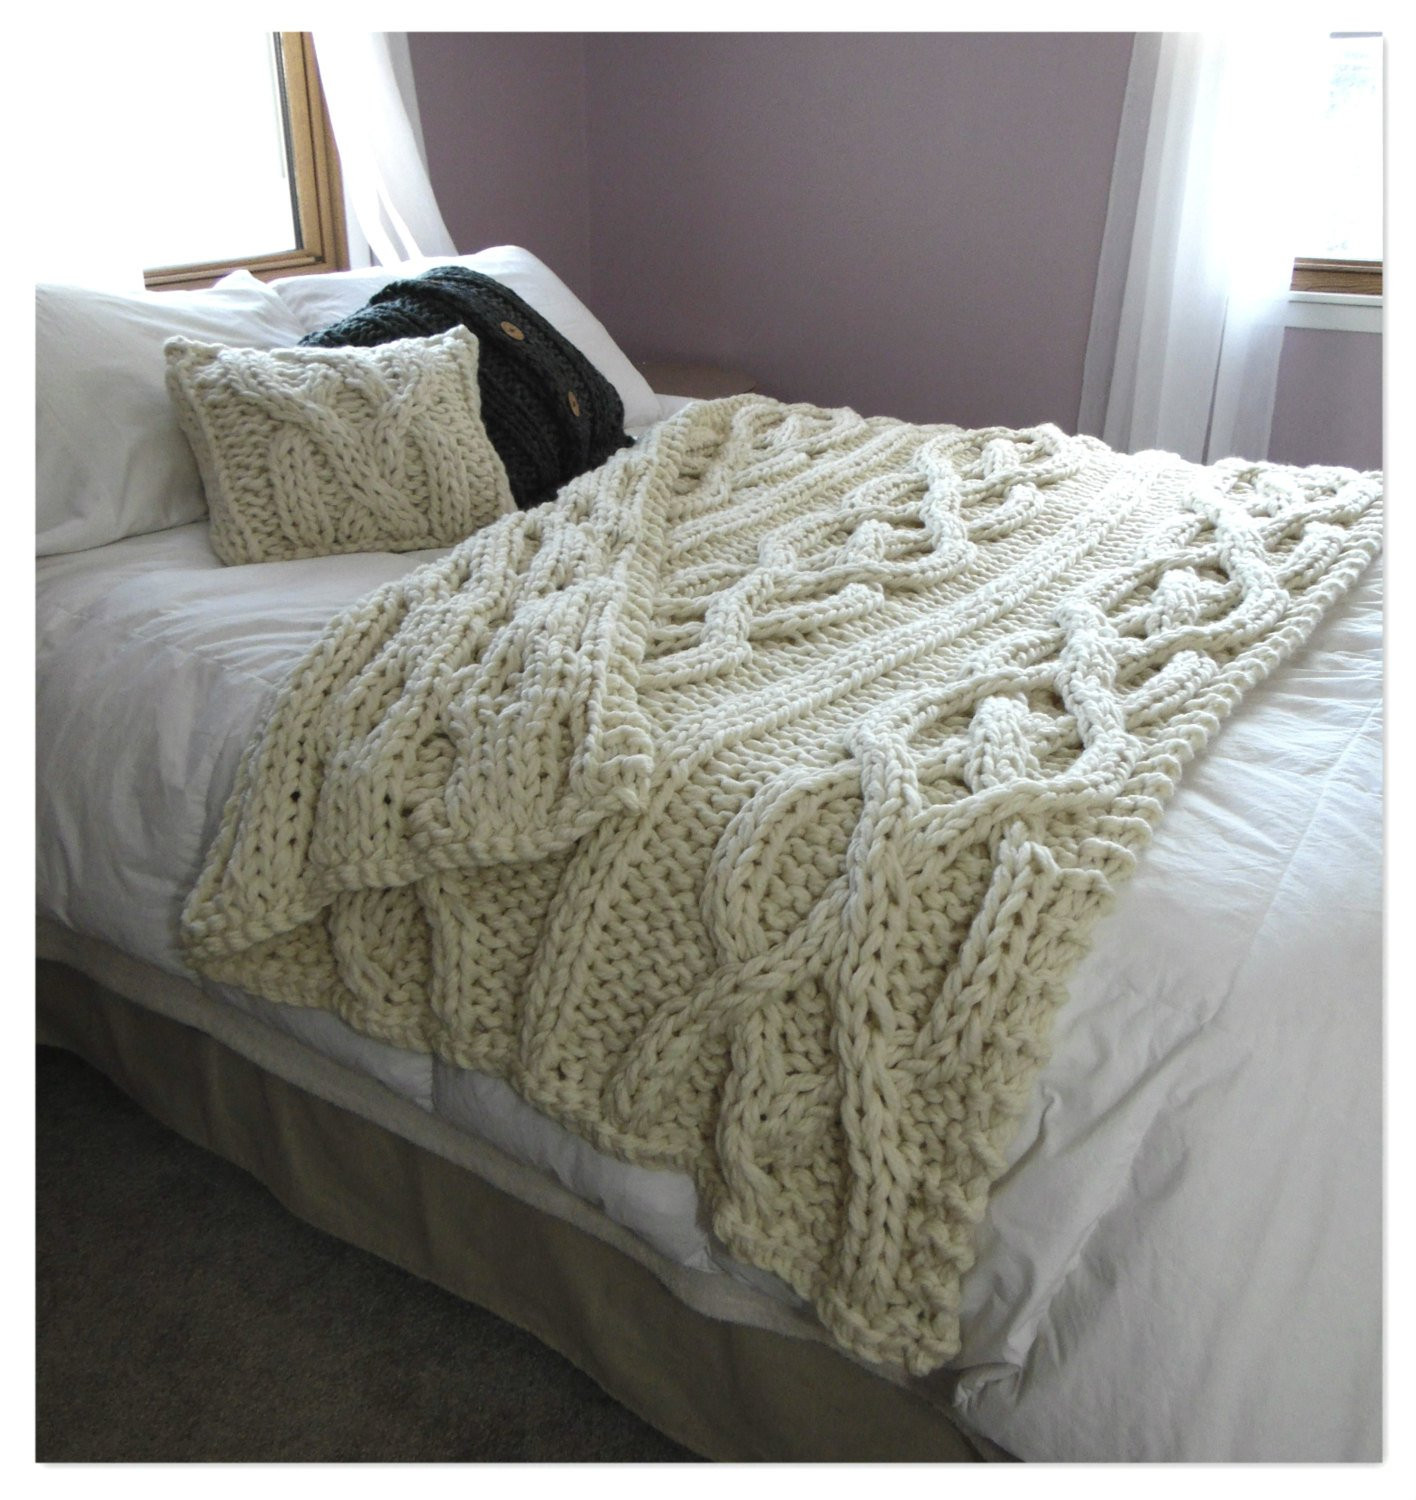 Large Knit Blanket Inspirational Luxury Oversized Cable Knit Blanket Made to order Of New 40 Images Large Knit Blanket